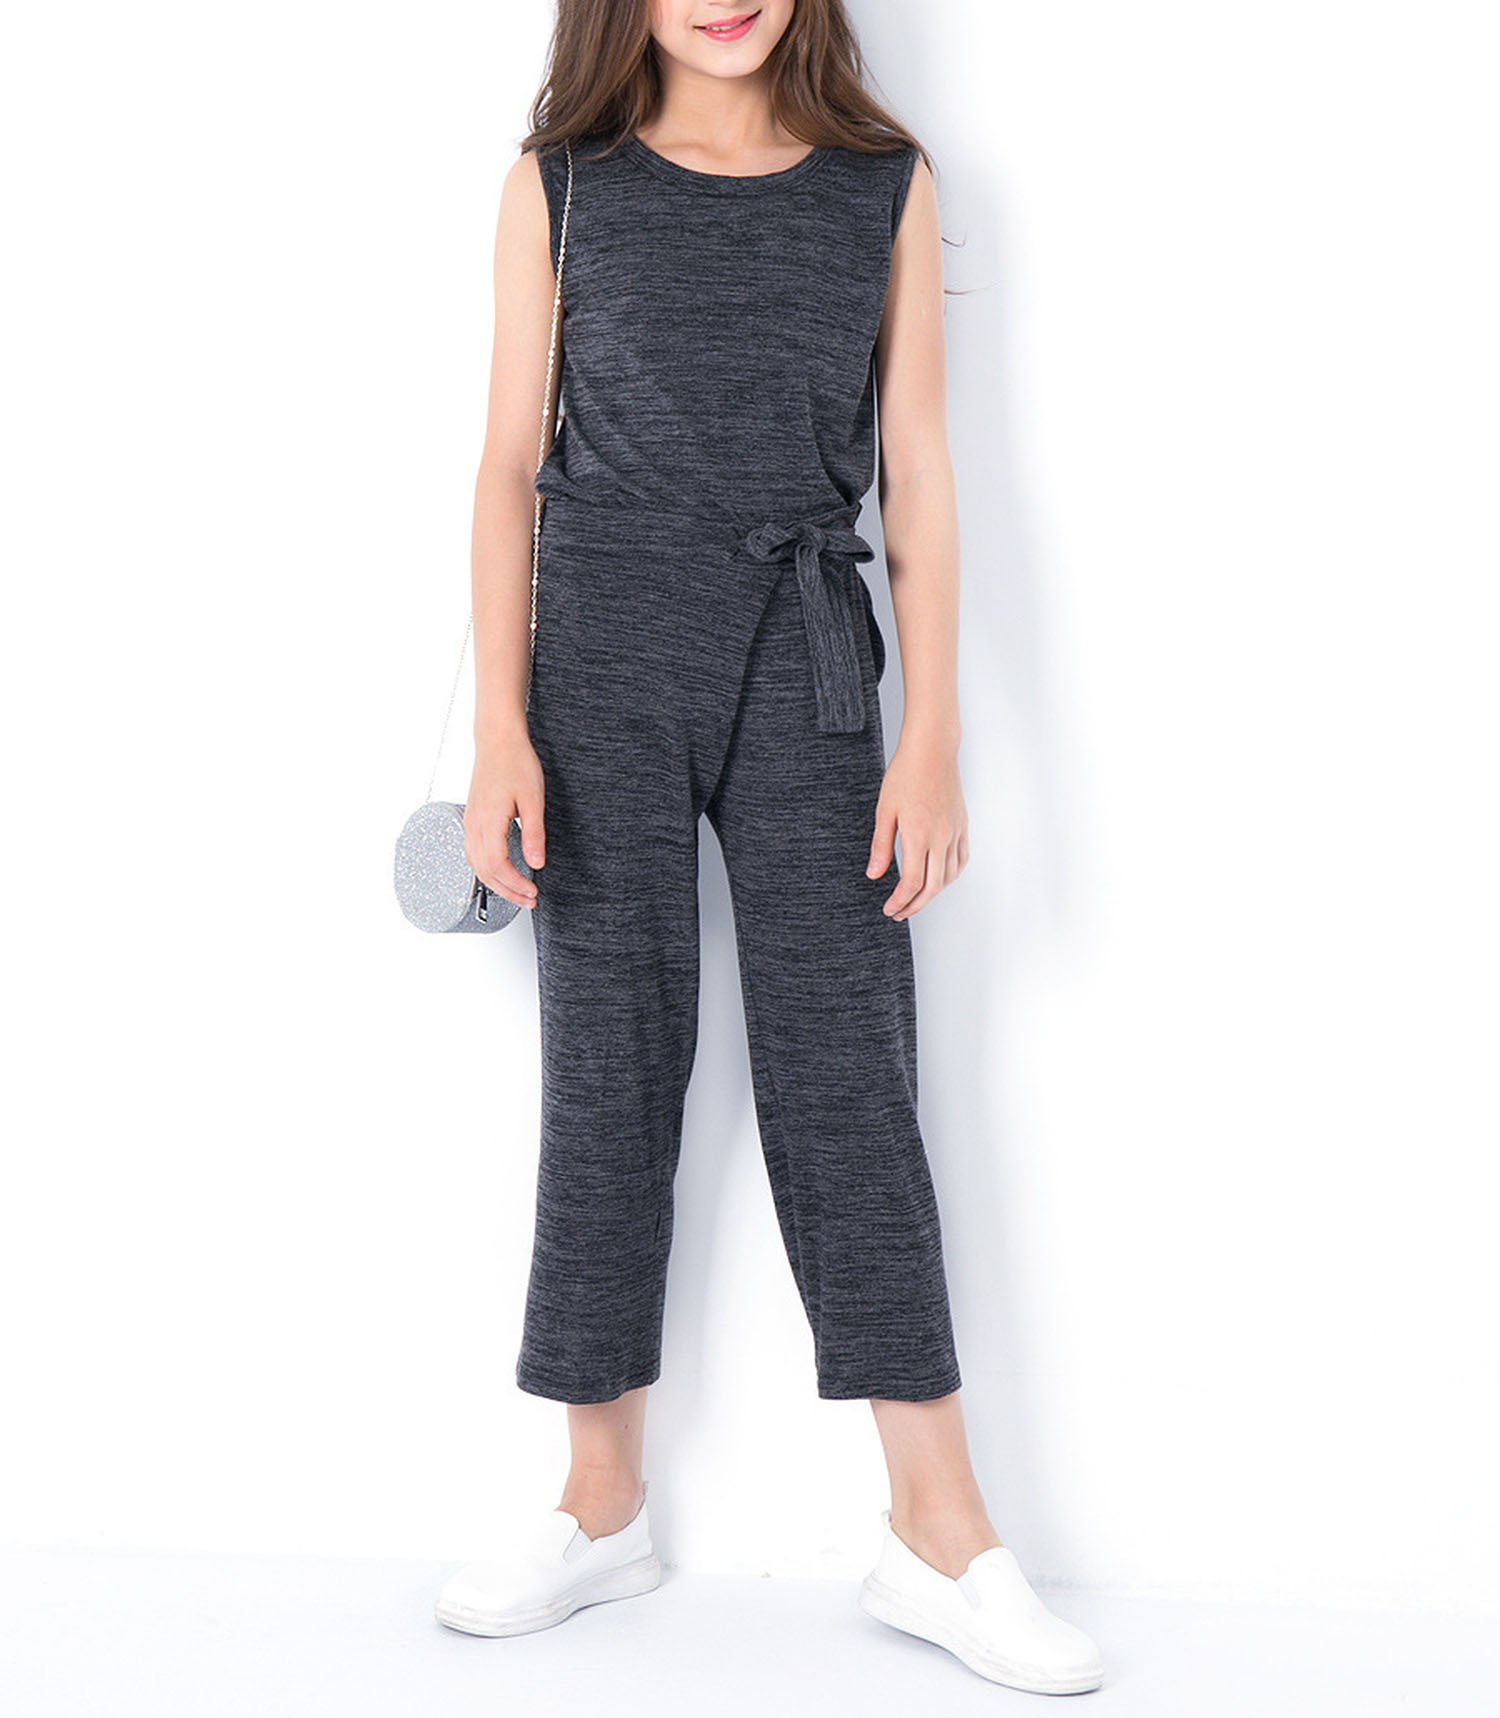 Zcaosma Teen Girls Clothing Two-Piece Girls Outfit Tops Pants Girls Clothing Set,Gray,6